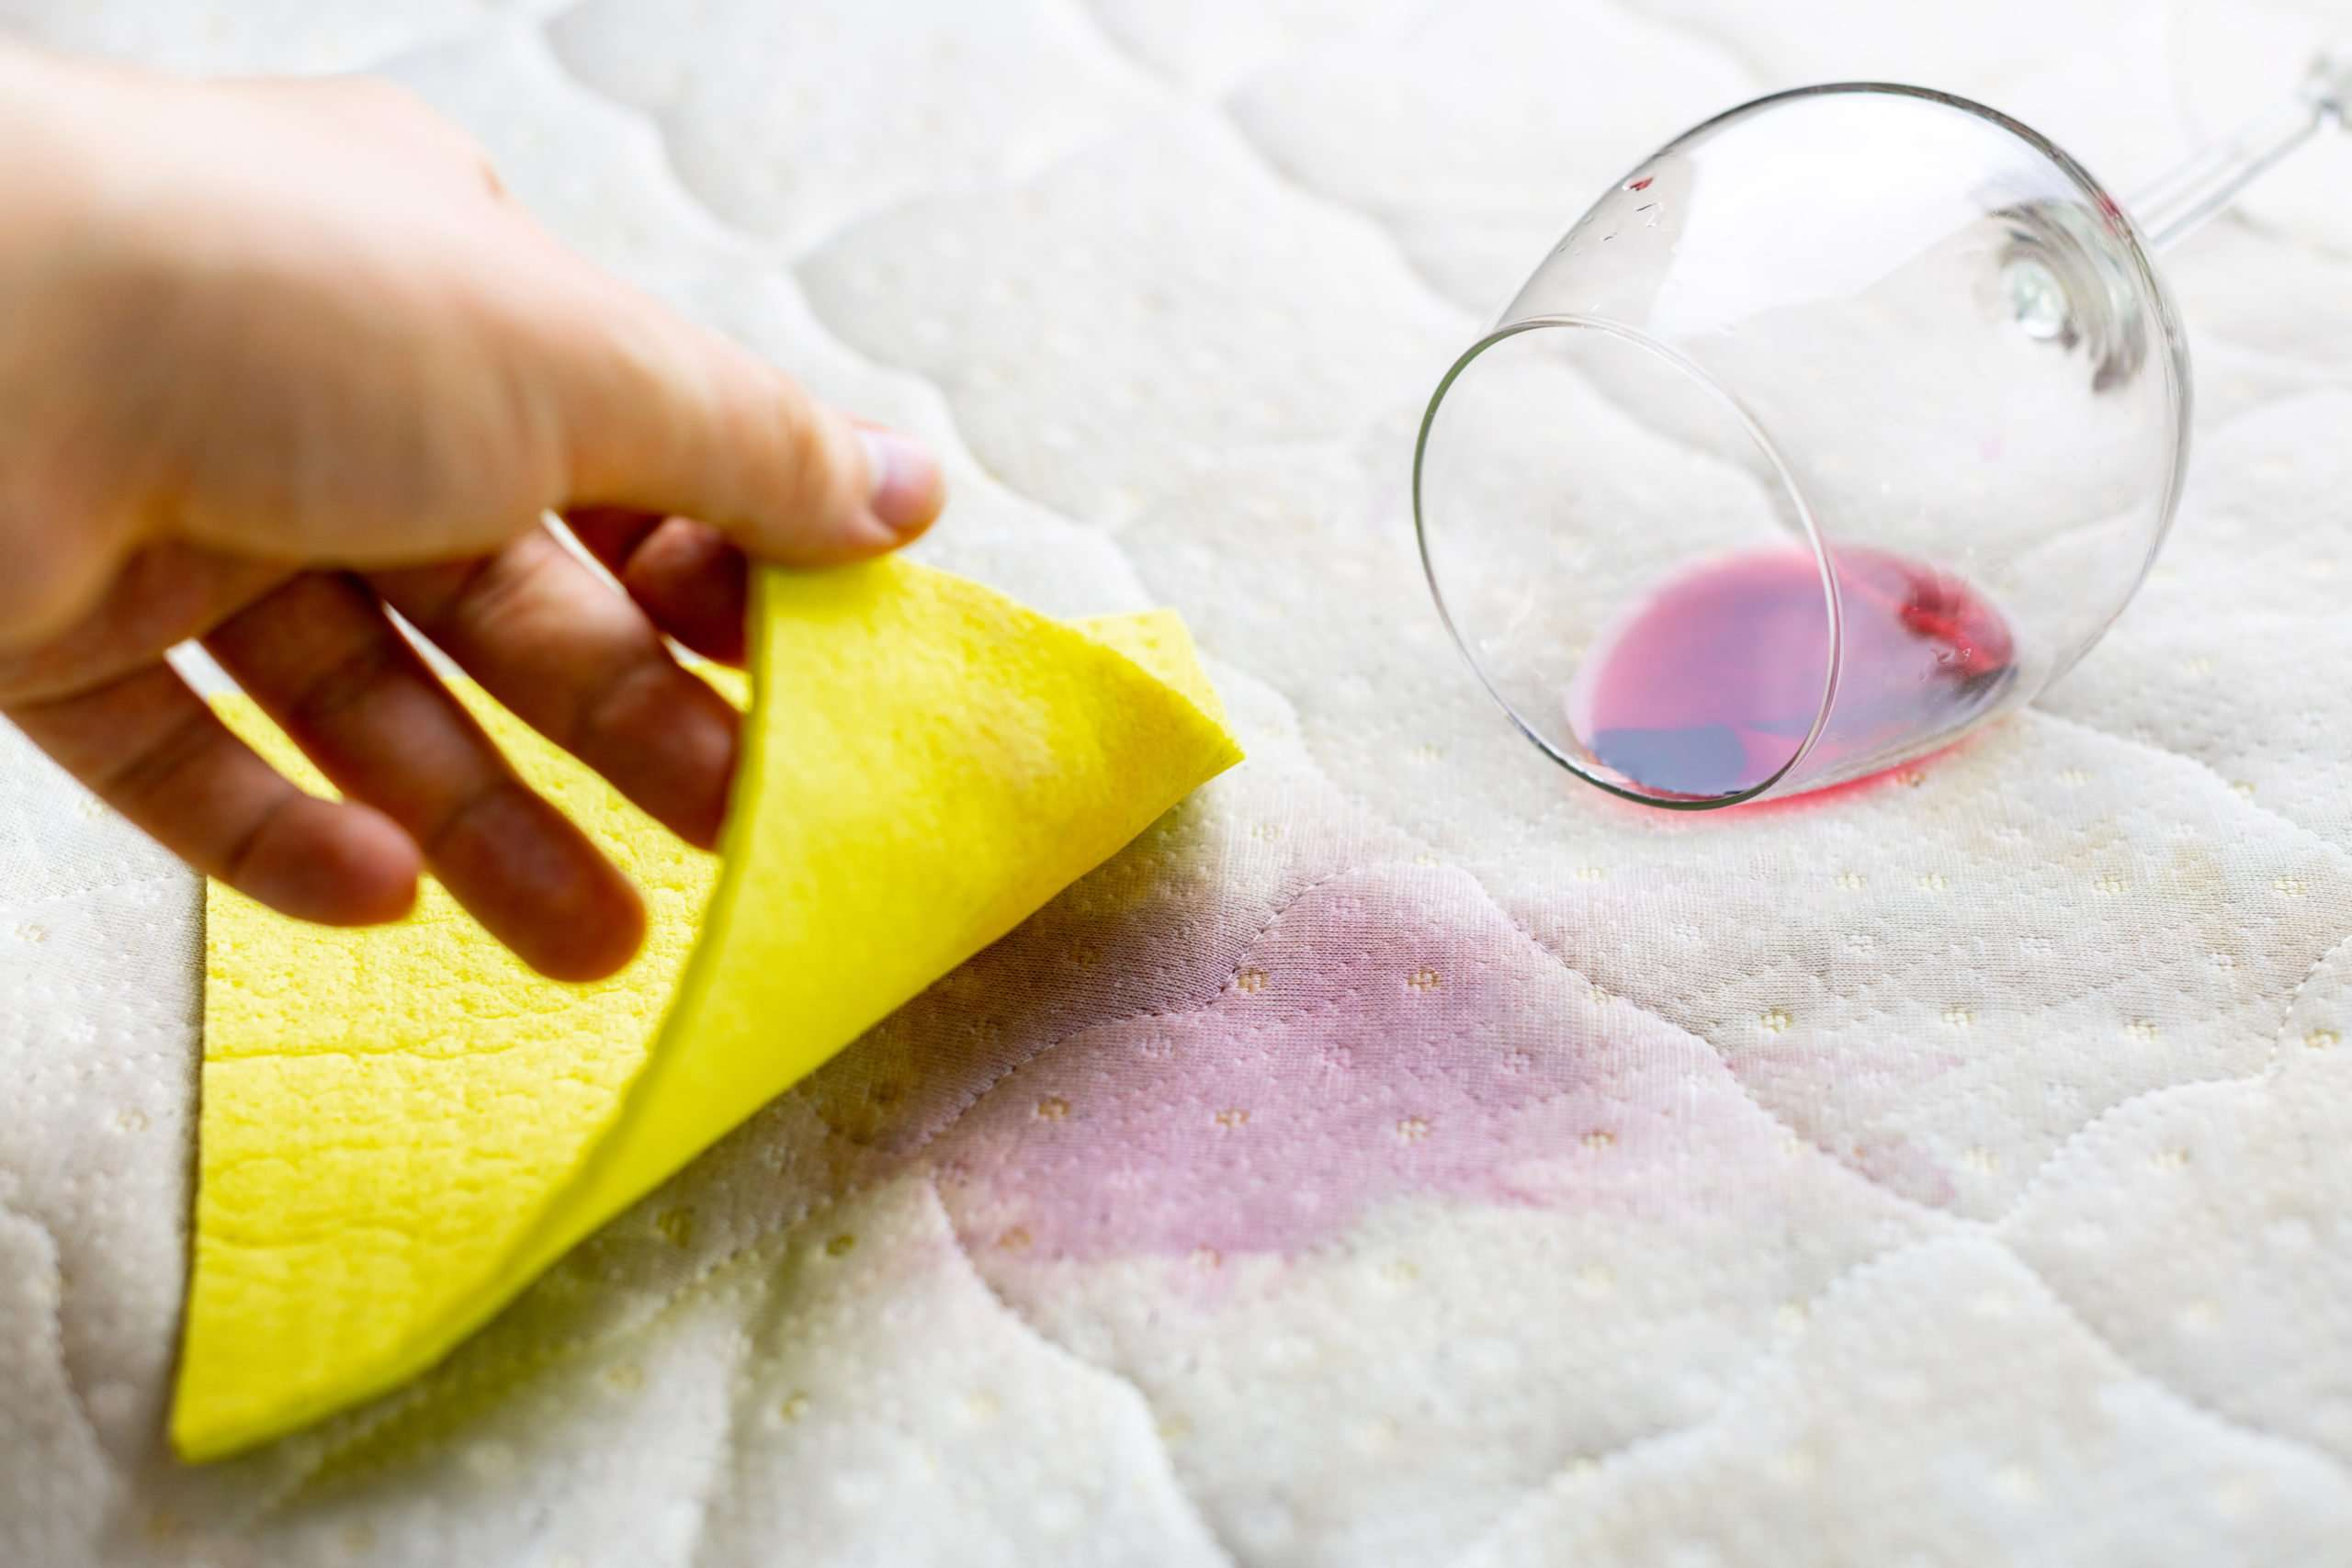 How to get wine stains out of a foam mattress